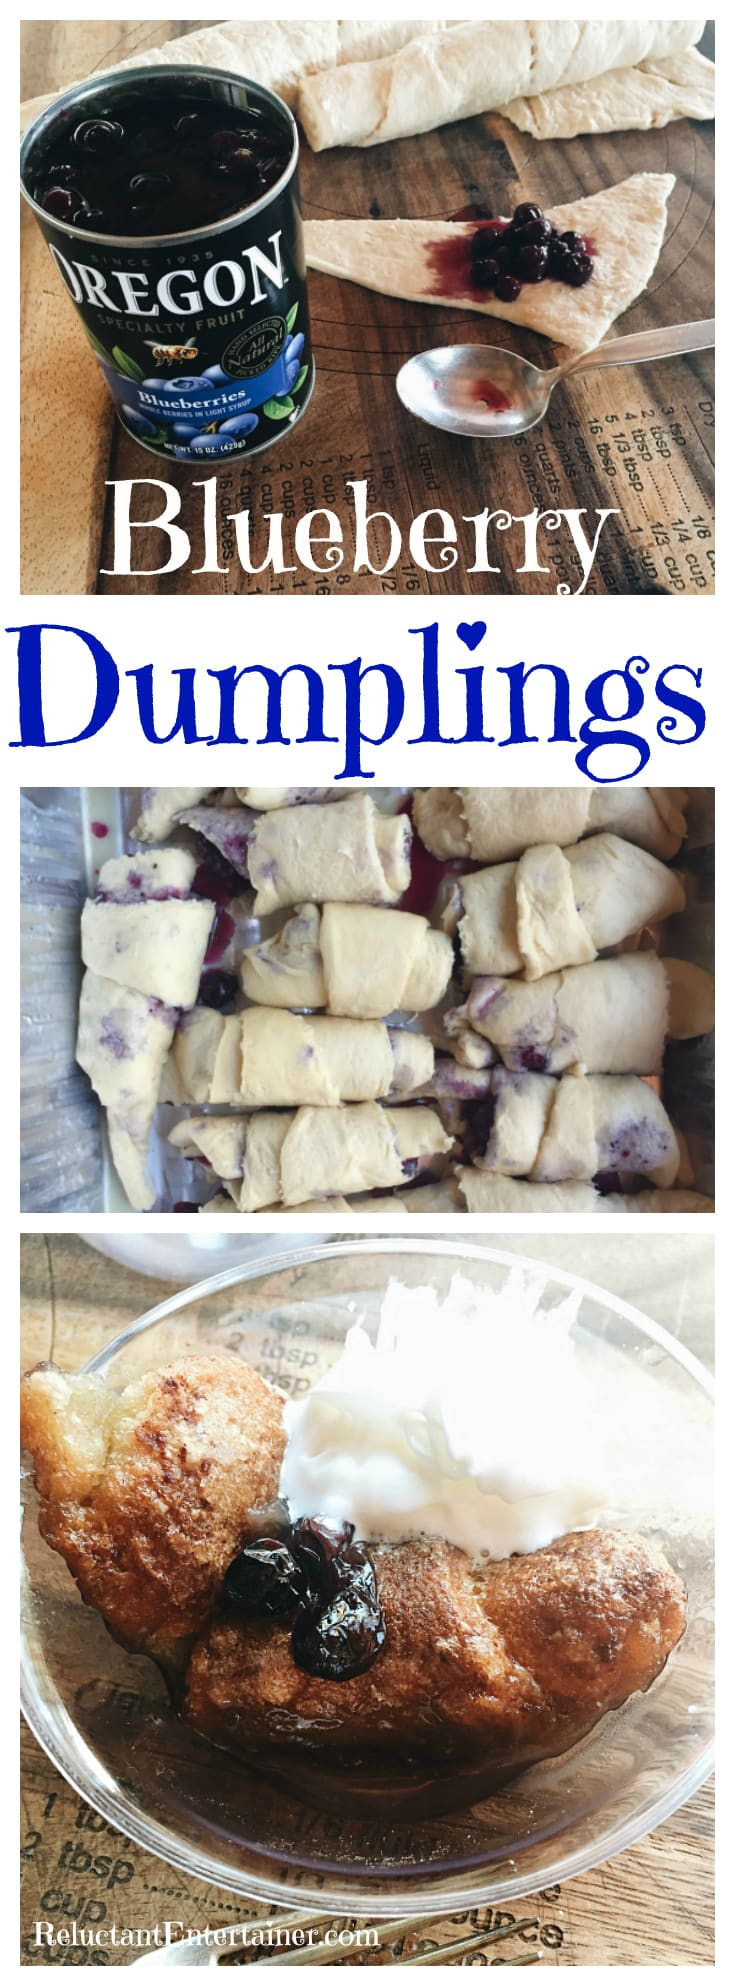 Blueberry Dumplings Recipe